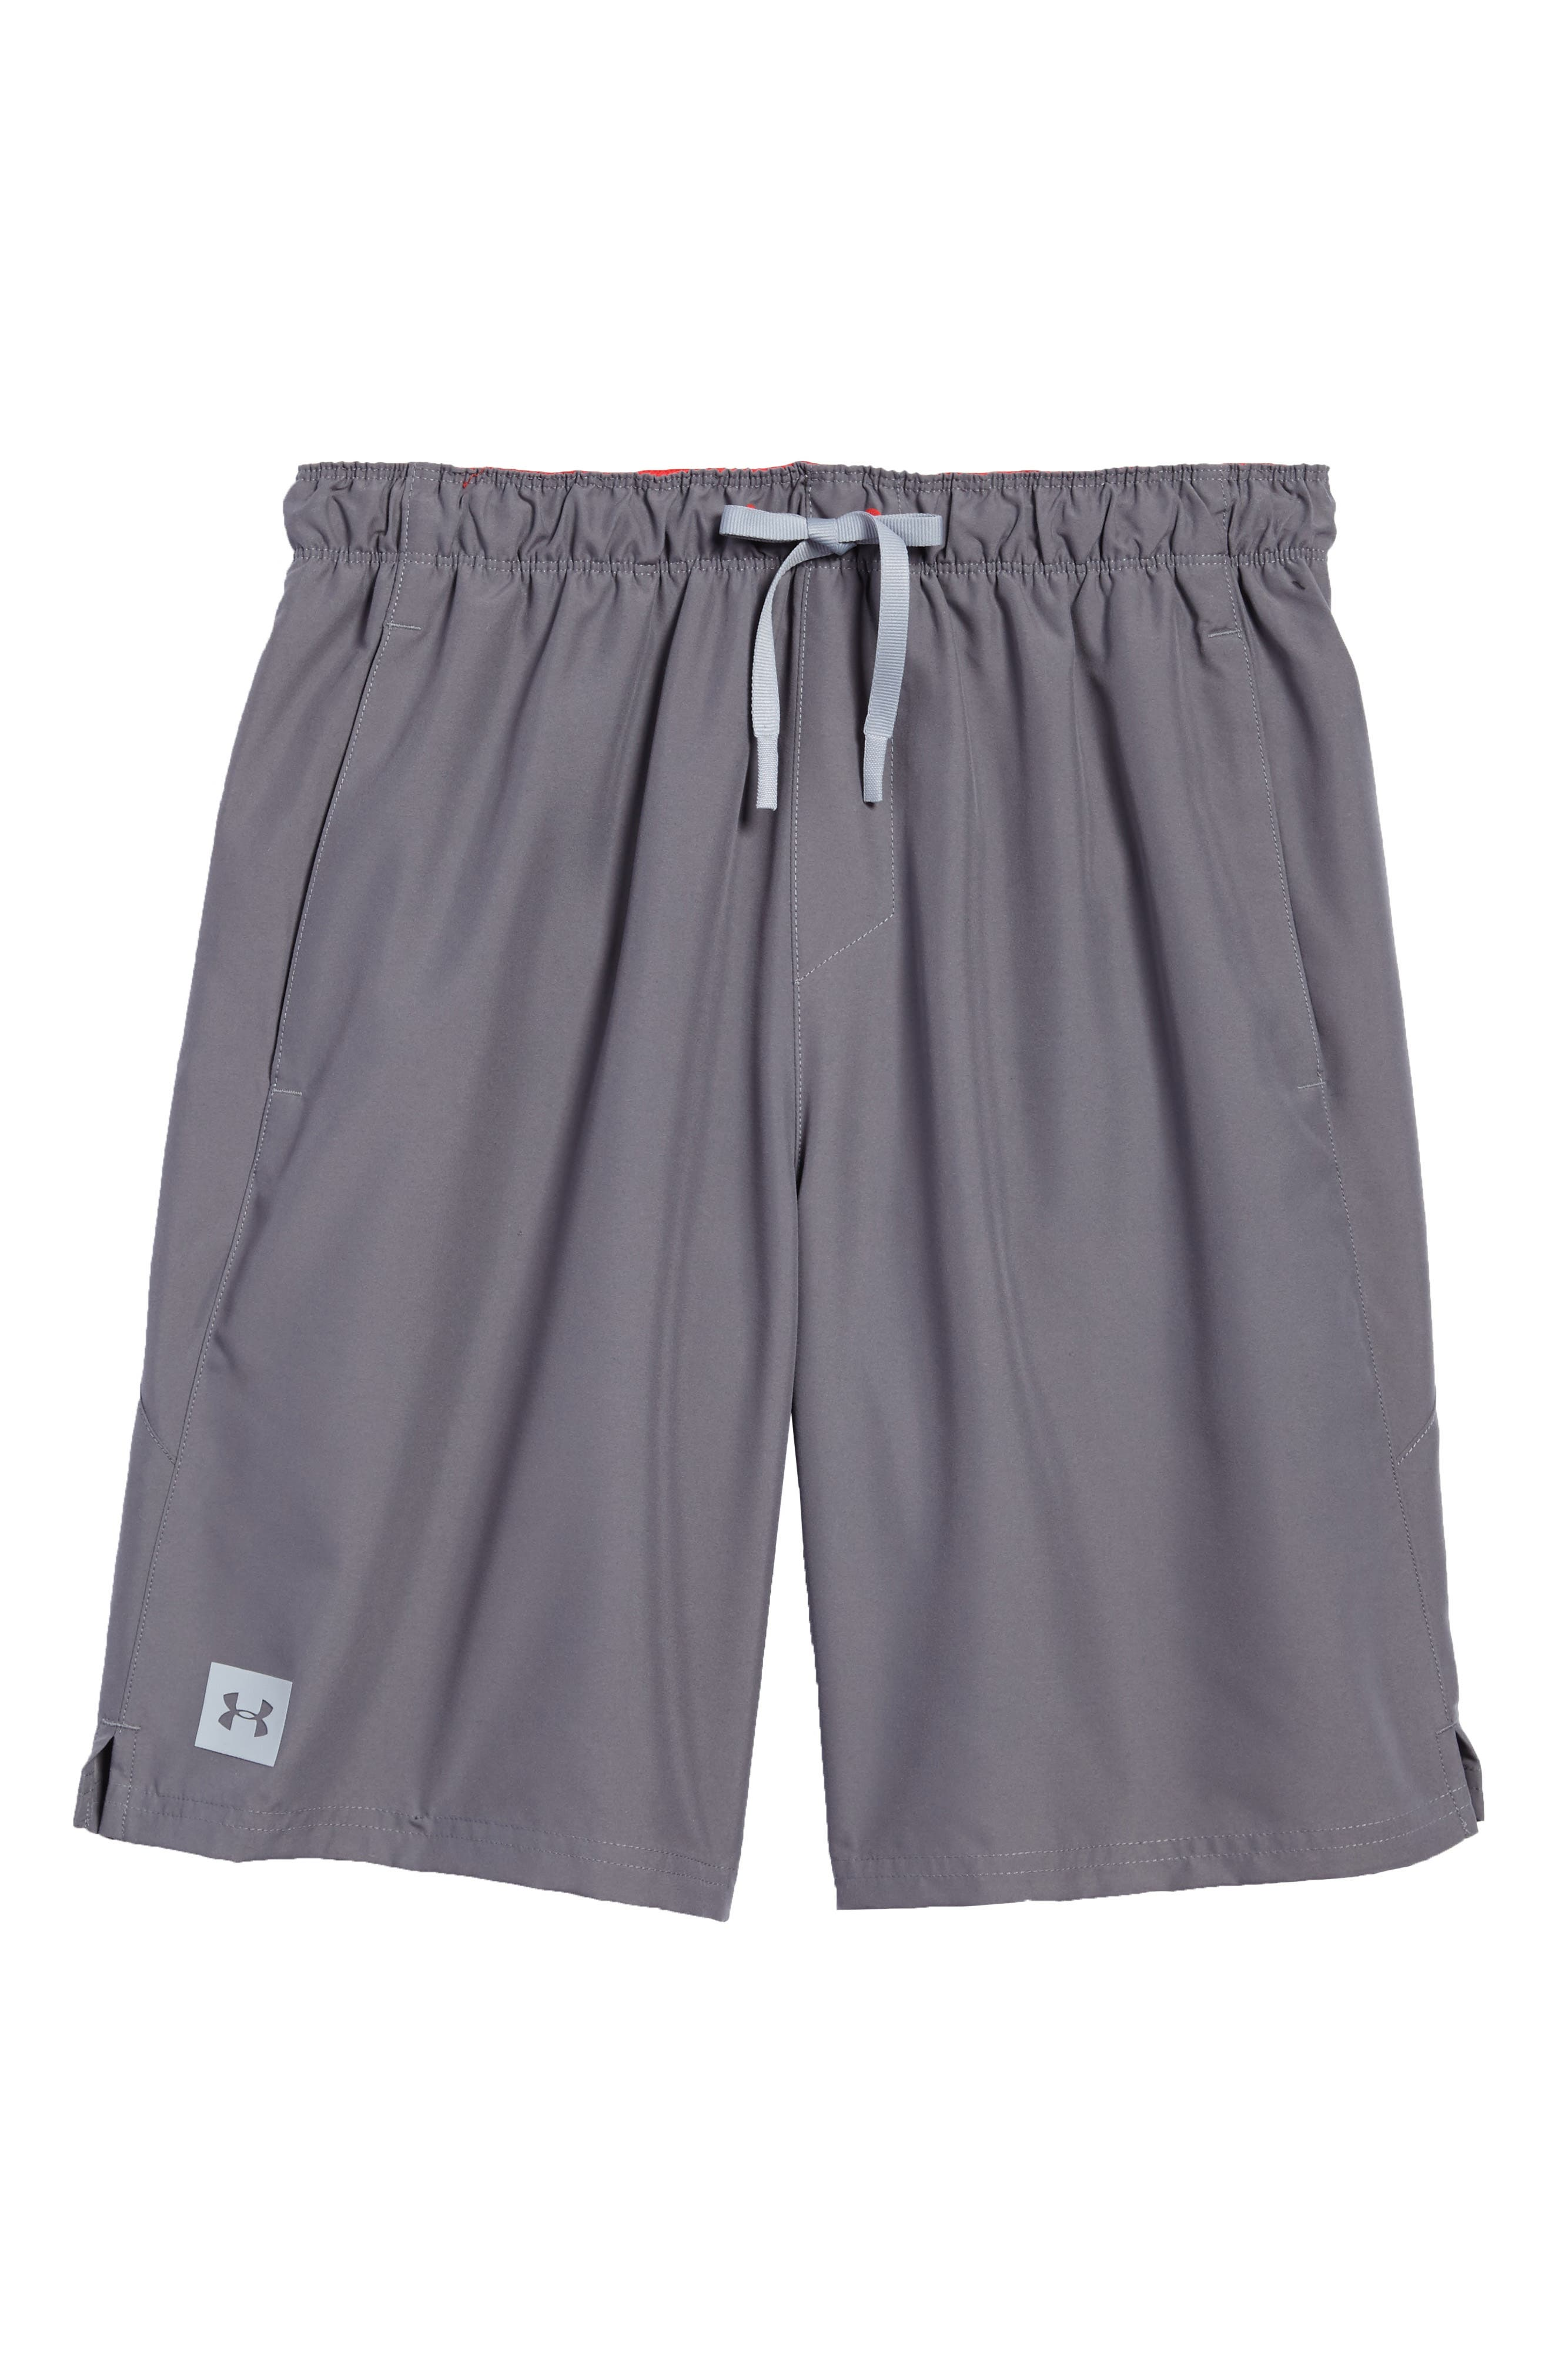 Mania Athletic Shorts,                             Alternate thumbnail 6, color,                             Graphite / Pierce / Grey